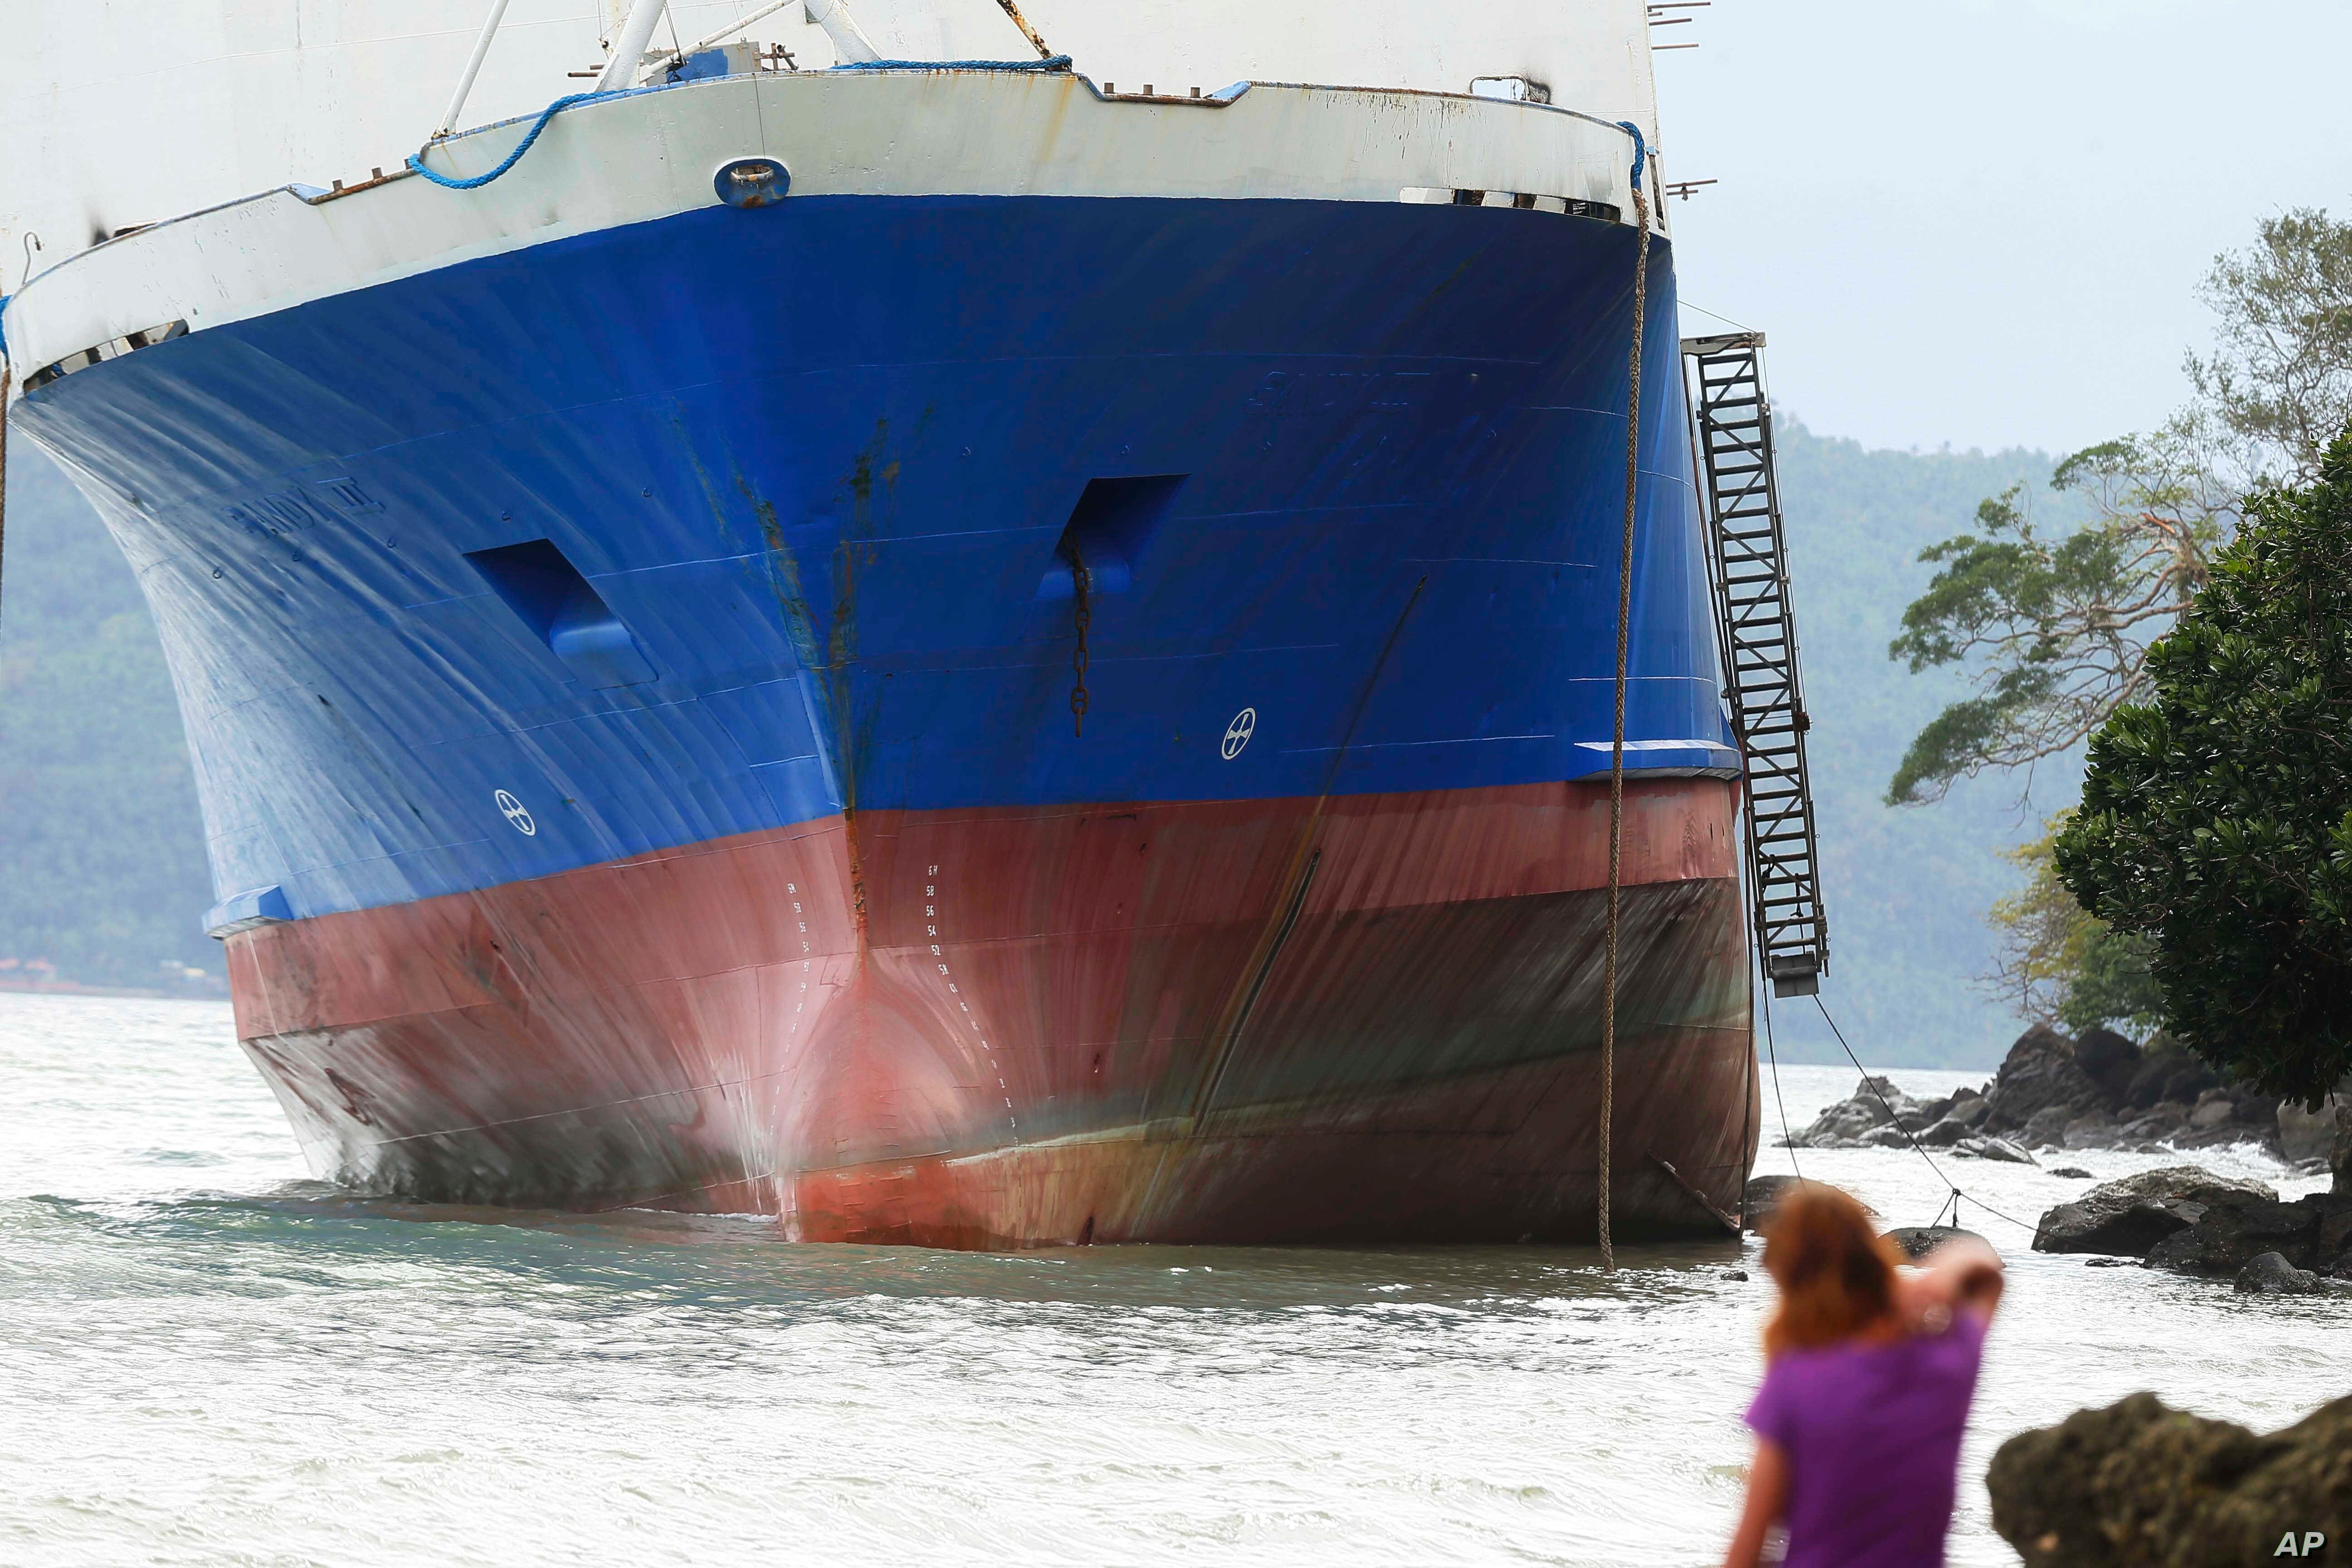 Philippines Searches For 18 Crewmen Of Ship Sunk By Typhoon Voice Of America English